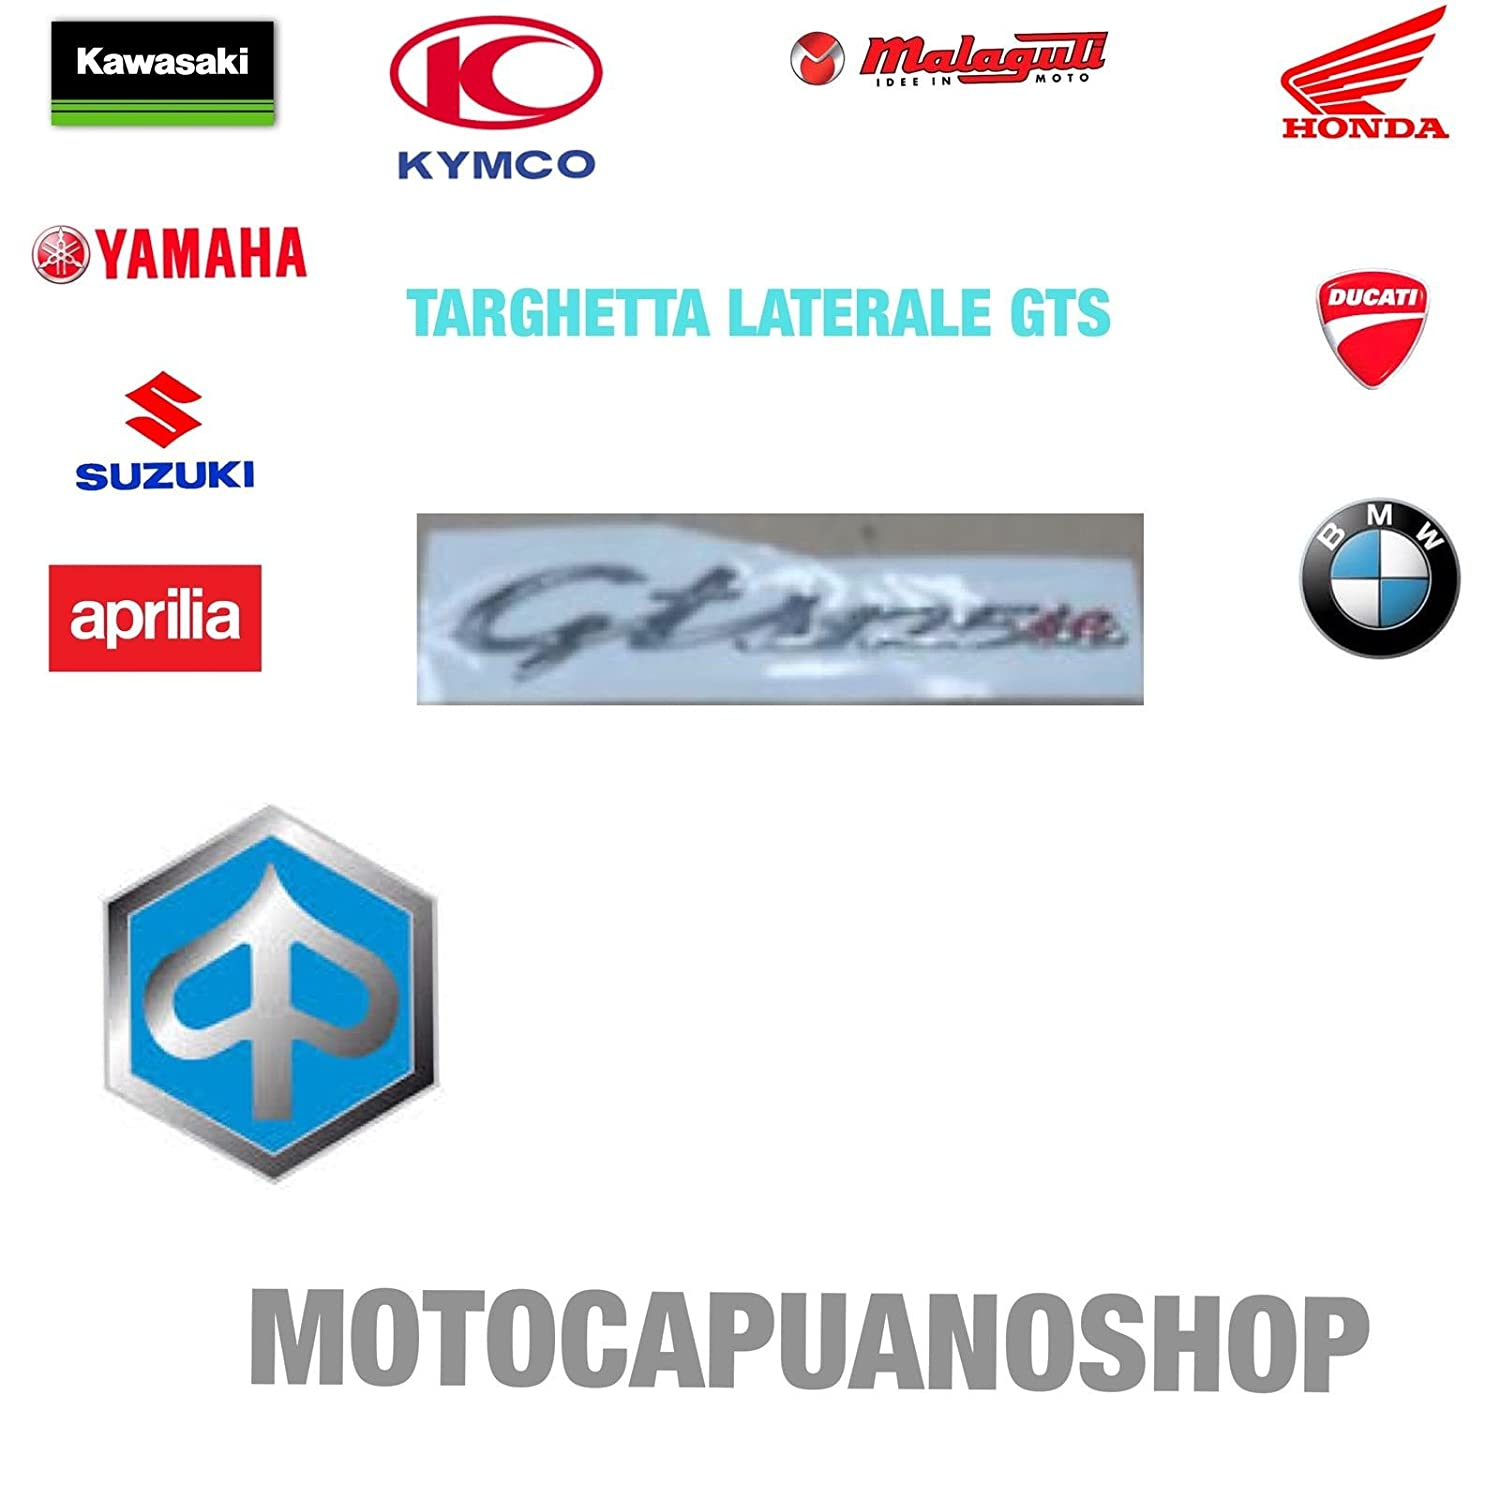 656462 Cartel Vespa GTS 125 Ie para brida lateral: Amazon.es ...